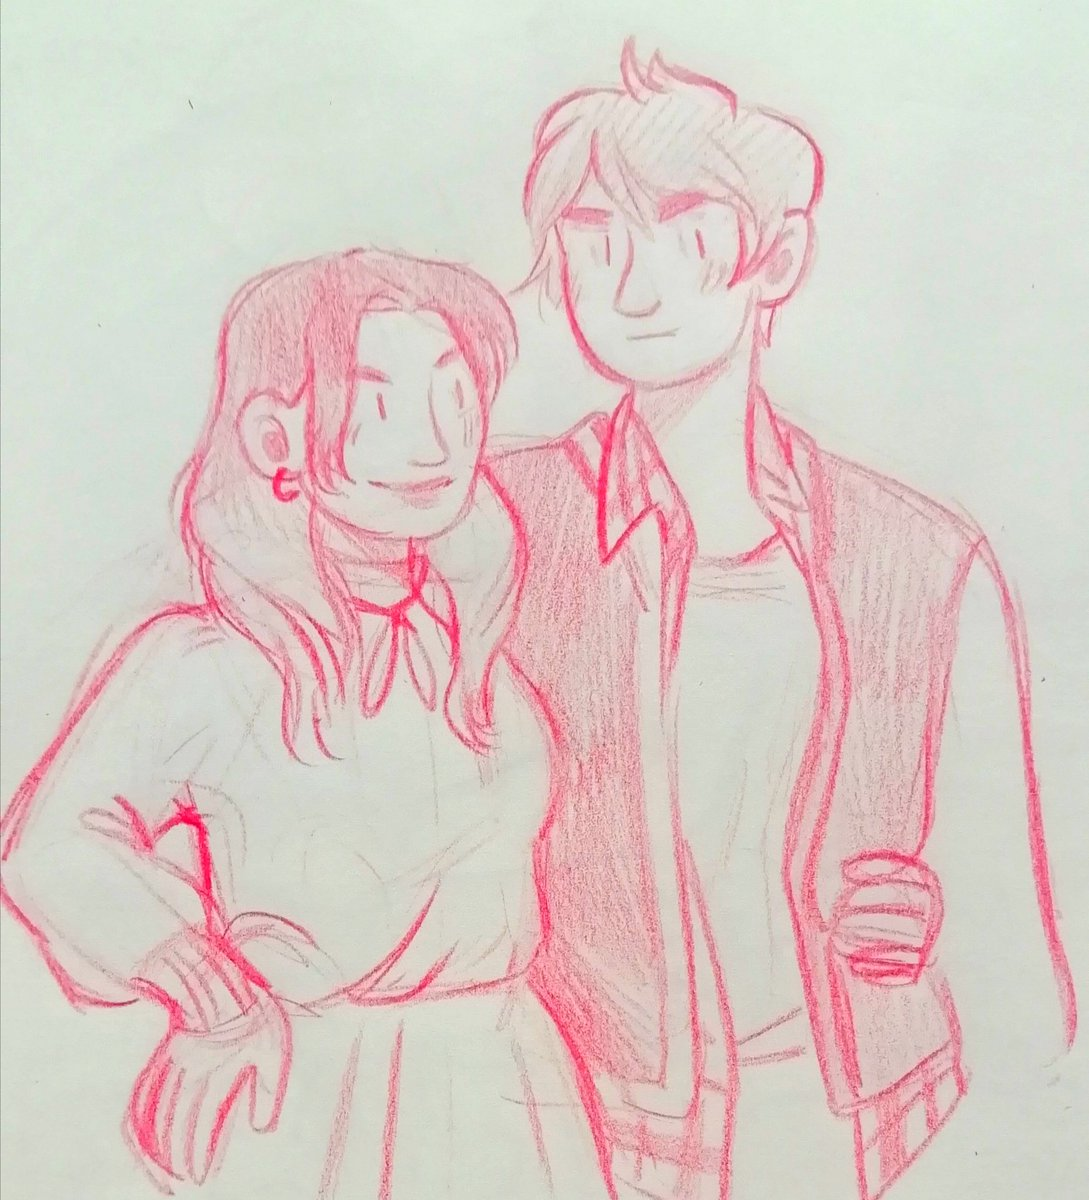 Here's Sasha and Cameron from #Cinderbrush  https://t.co/9VBglasi1c https://t.co/ldRRyhPqku